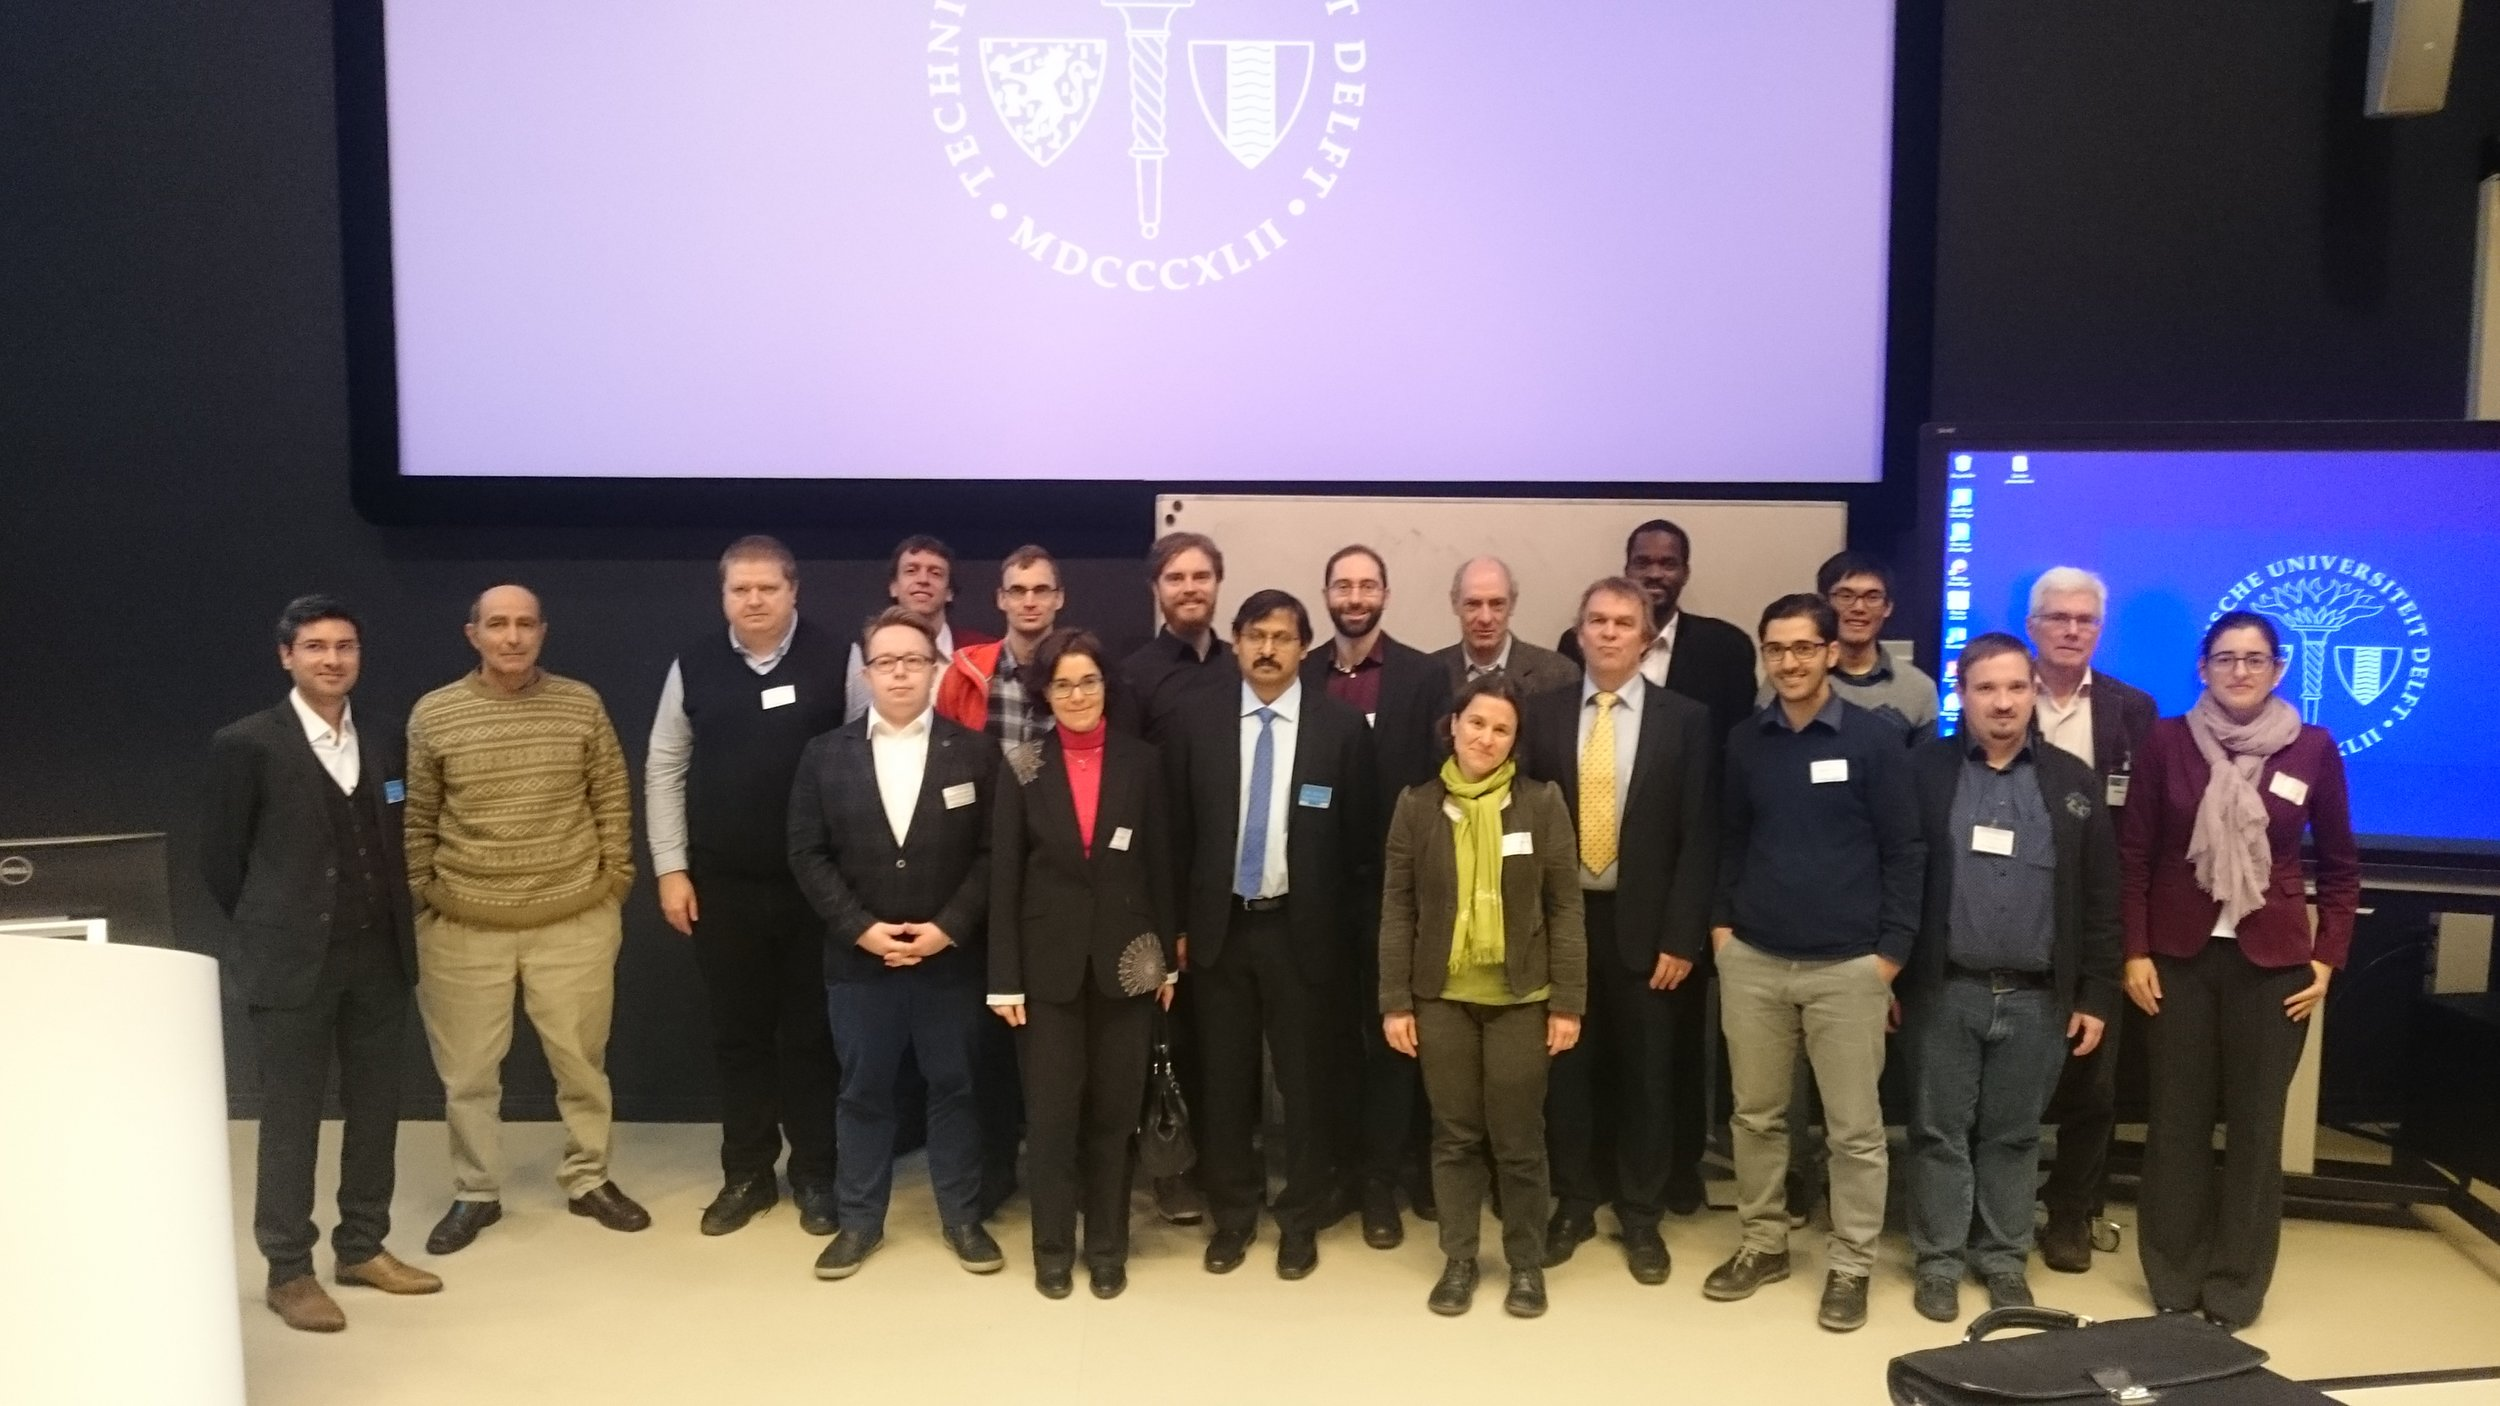 BALANCE consortium and advisory board members at the symposium.